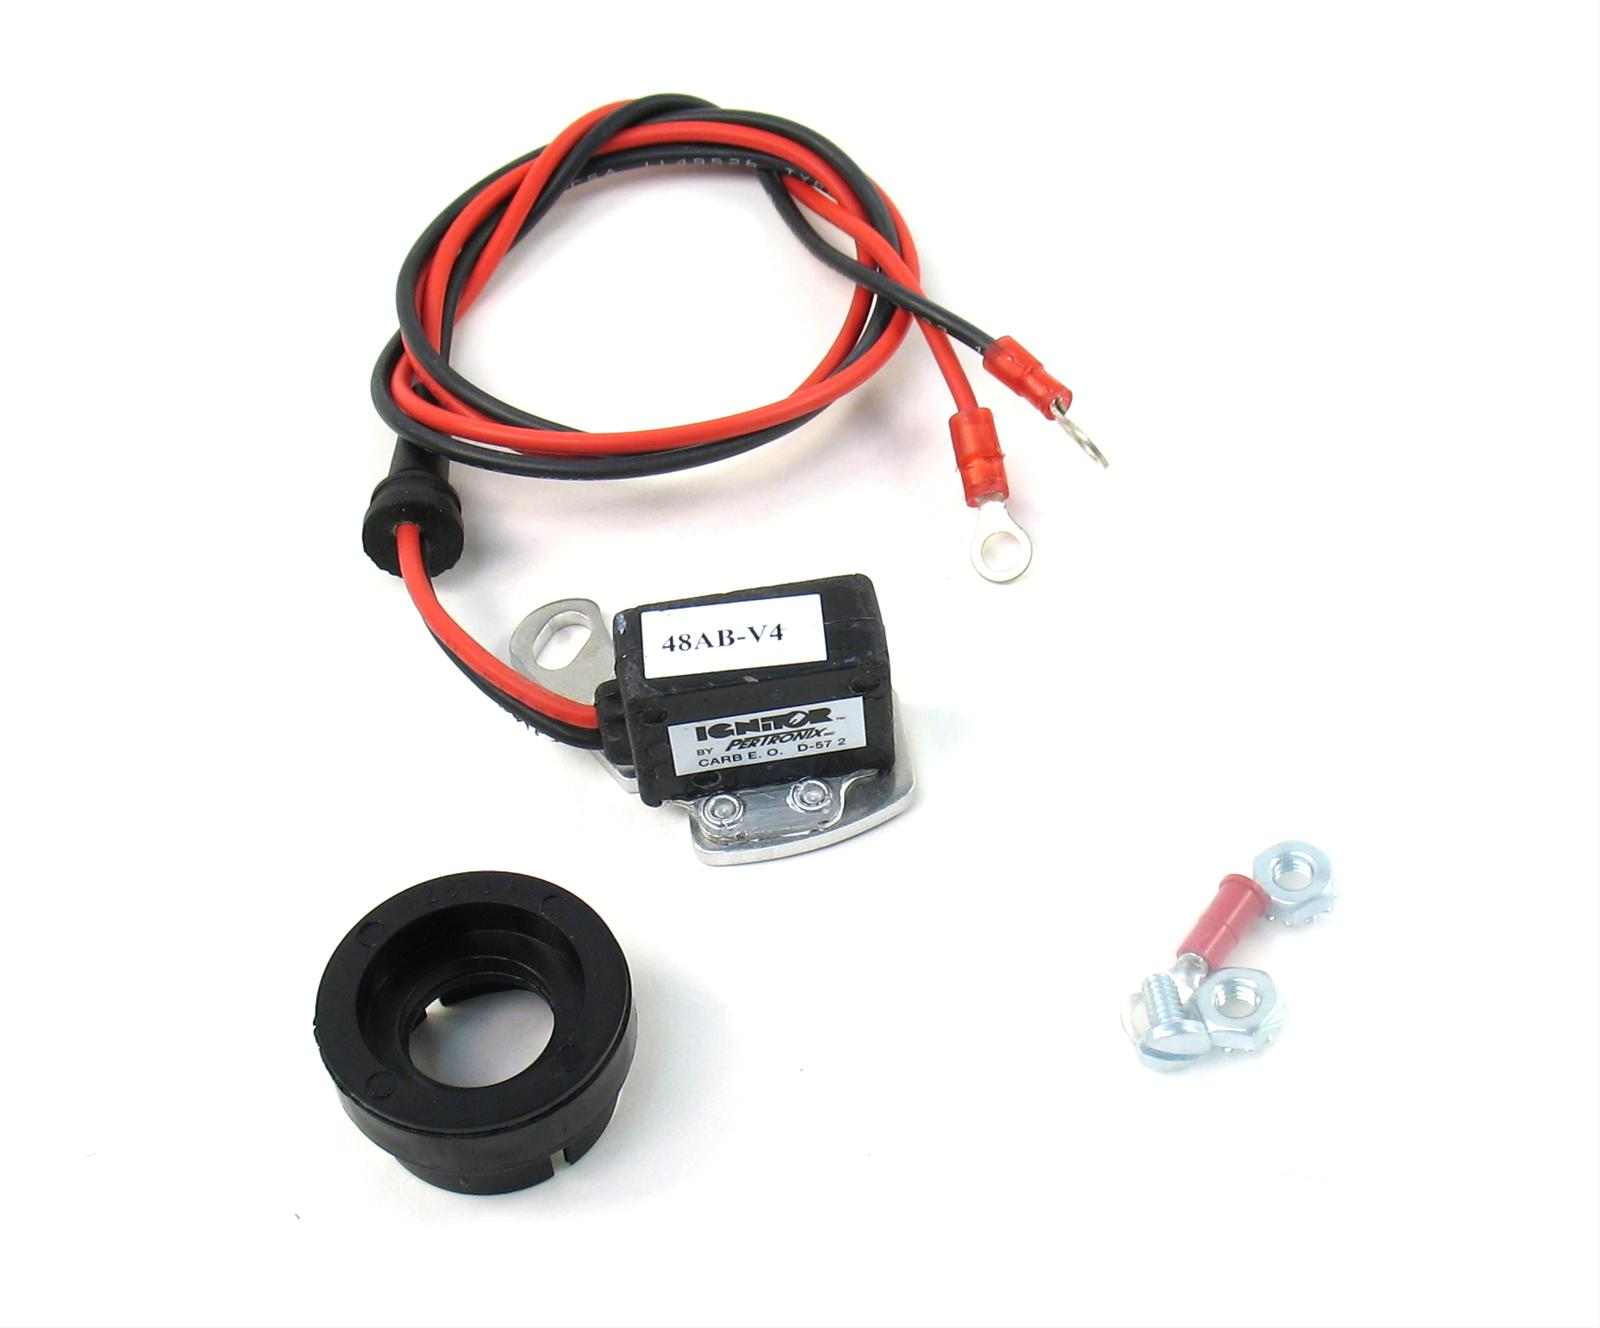 hight resolution of pertronix ignitor solid state ignition systems 1281 free shipping on orders over 99 at summit racing